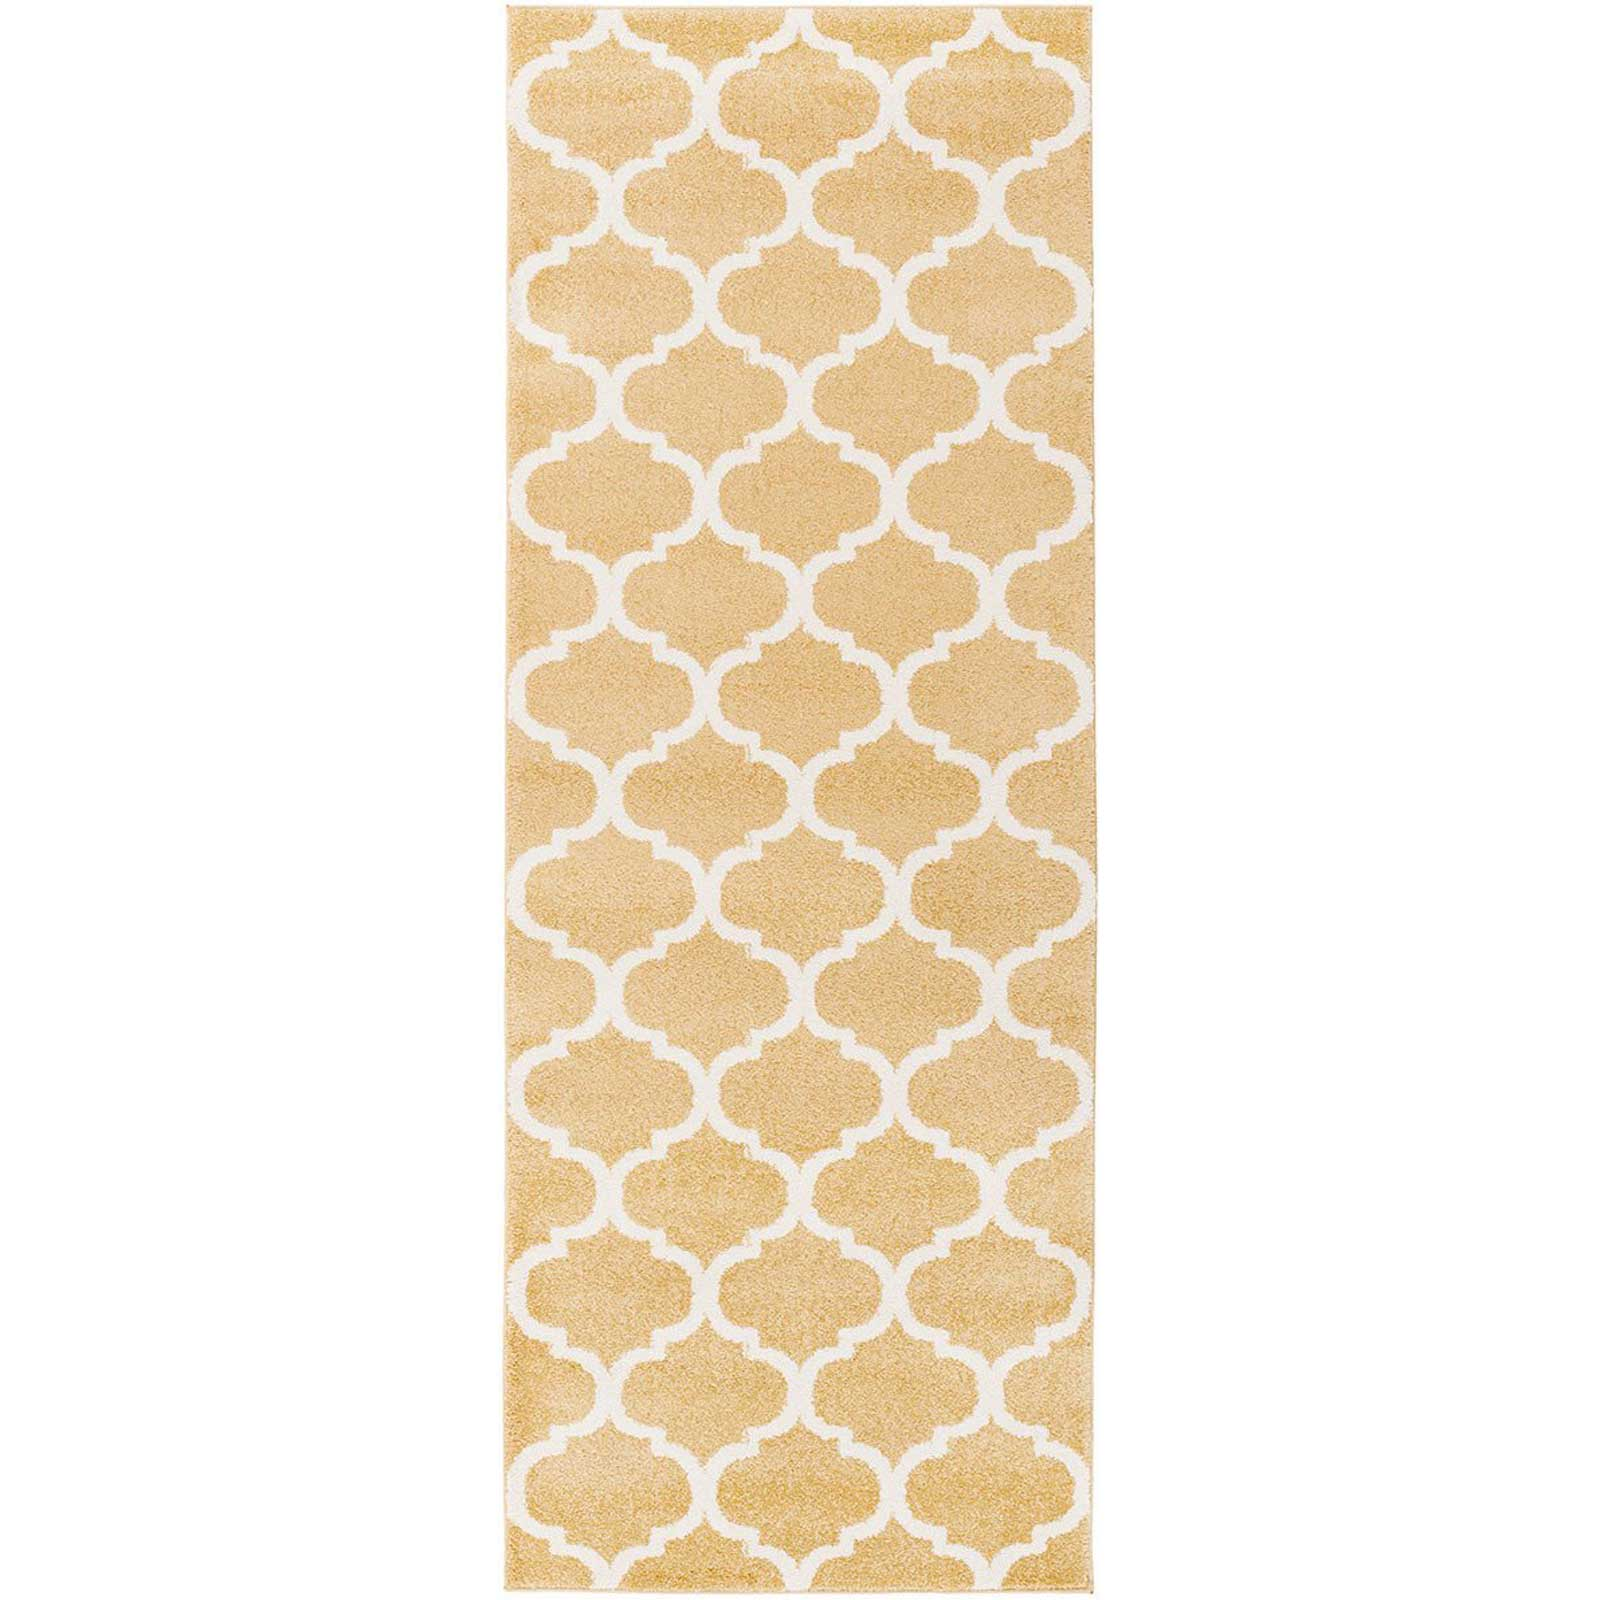 Horizon Lattice Gold/Ivory Runner Rug